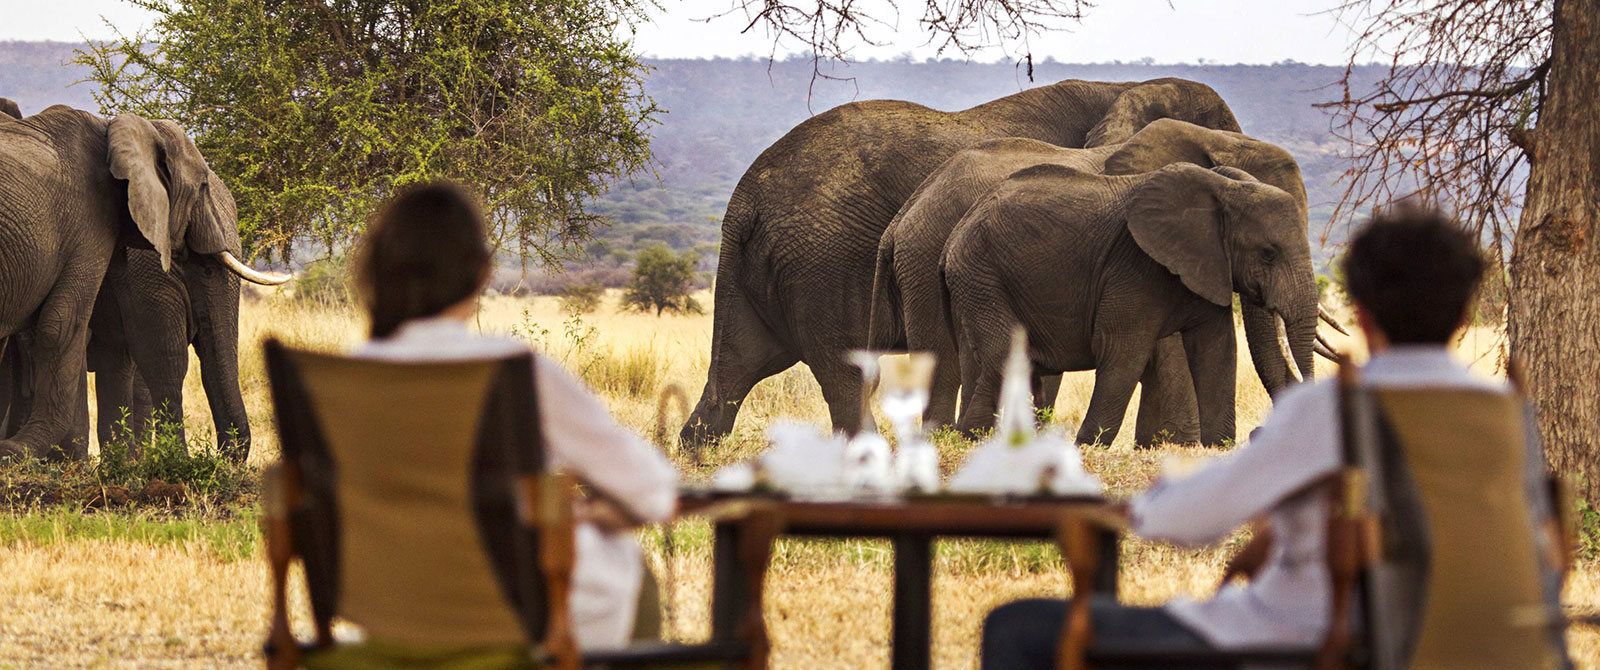 See Wild Elephants at Breakfast - Little Chem Chem - East African Safari: Kenya and Tanzania Luxury Tour